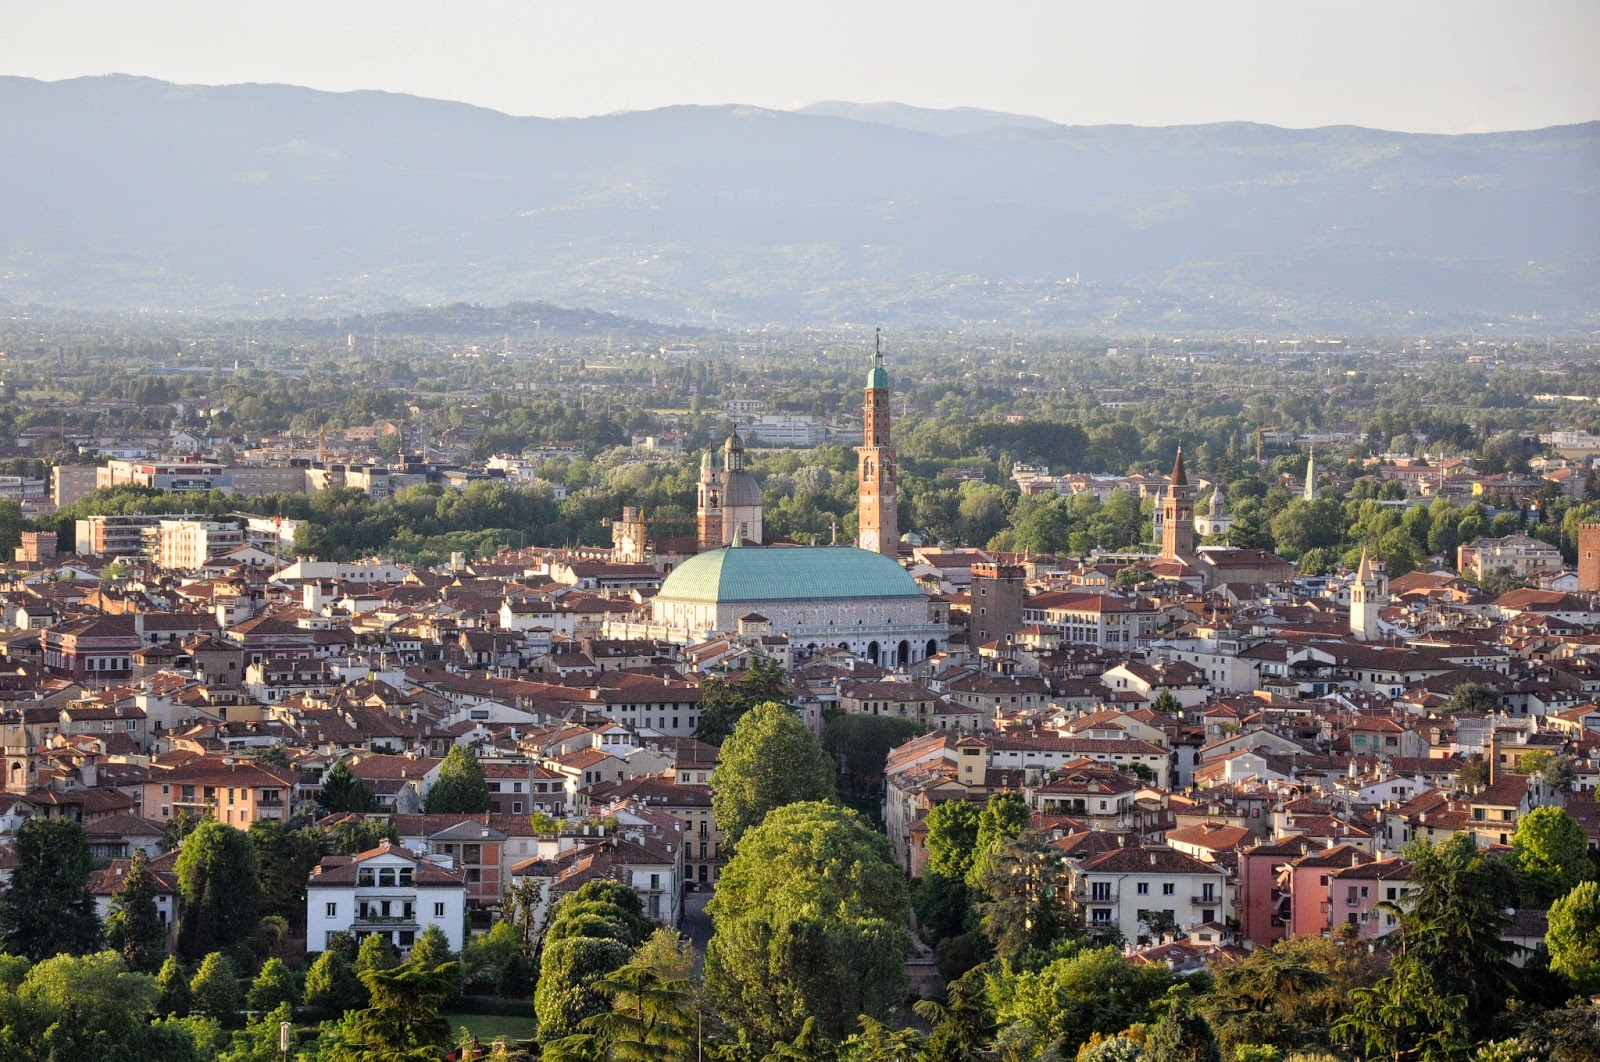 Vicenza and Palladio's Basilica seen from Monte Berico, Veneto, Italy